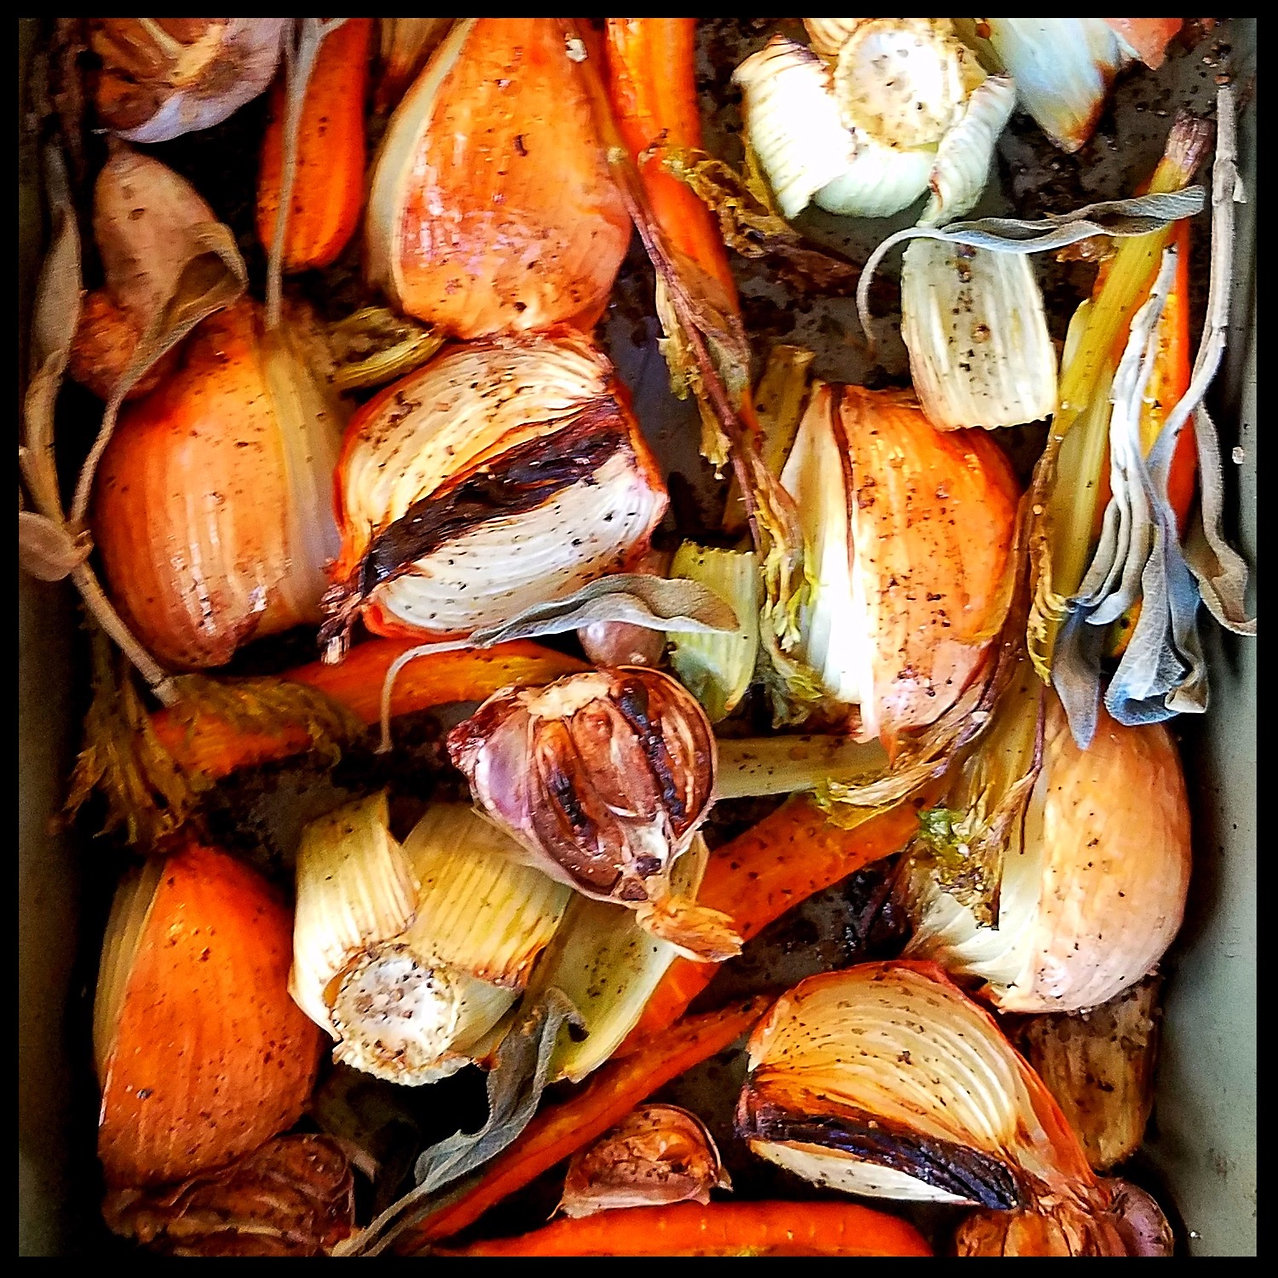 Roasted onions and carrots on baking sheet.